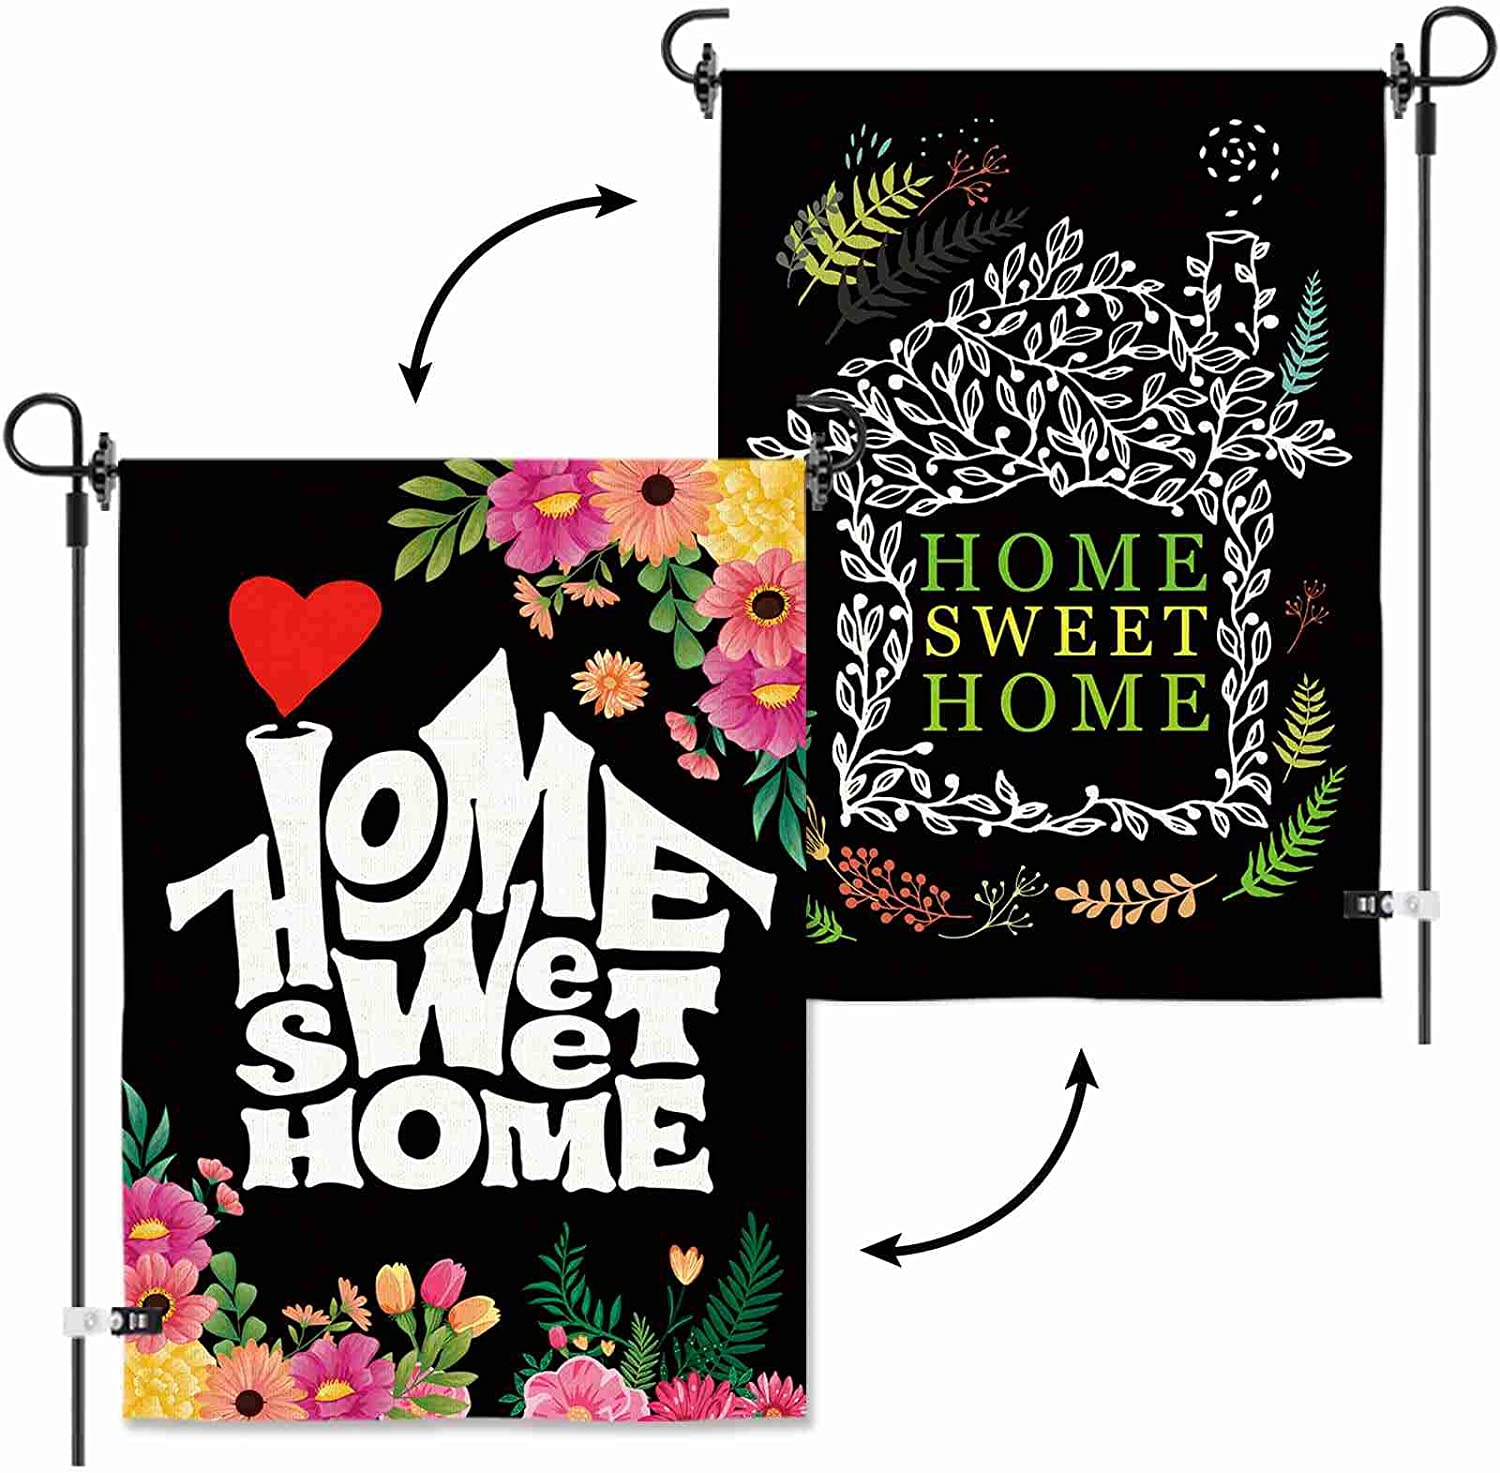 AOKDEER Home Sweet Home Garden Flag Flower Floral Double Sided Vertical Burlap Decorative House Small Spring Summer Banner Yard Flags Seasonal Garden Flag for Indoor /Outdoor 12.5 X 18 Inch